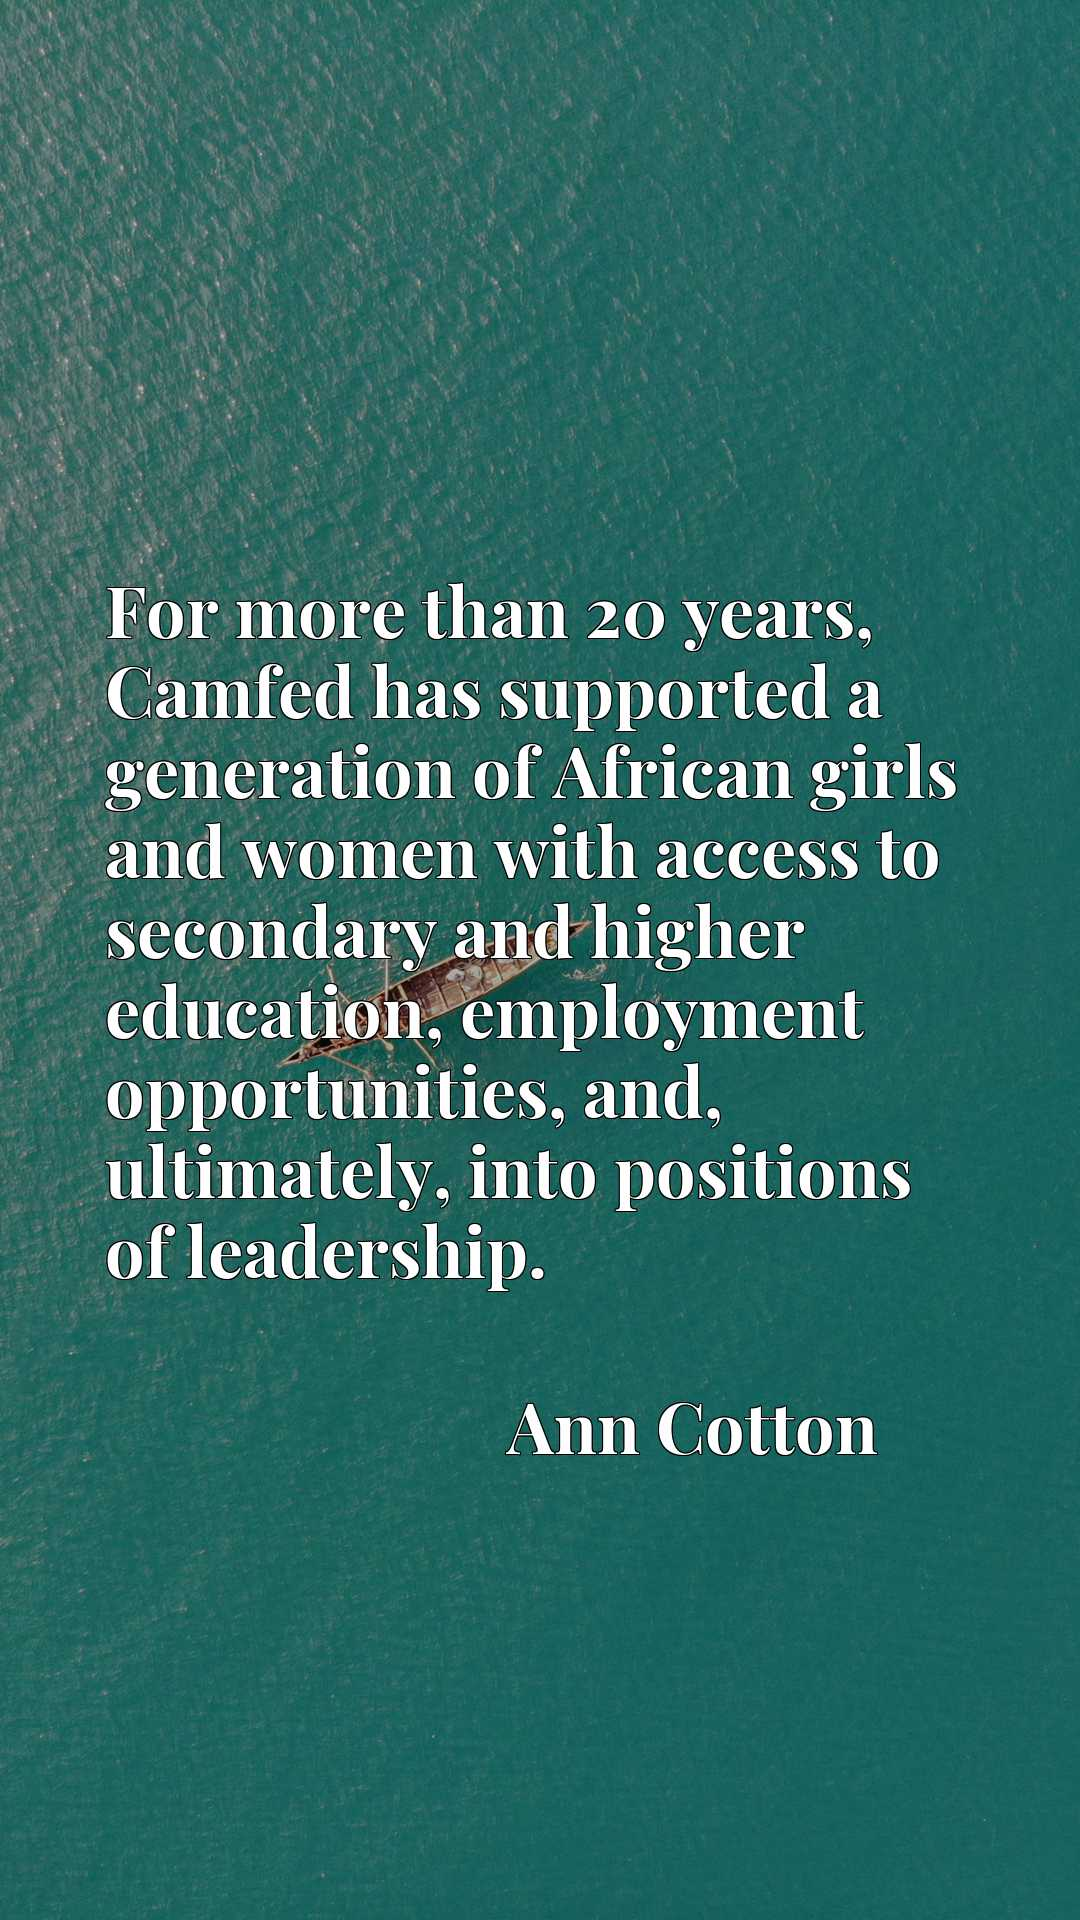 Quote Picture :For more than 20 years, Camfed has supported a generation of African girls and women with access to secondary and higher education, employment opportunities, and, ultimately, into positions of leadership.